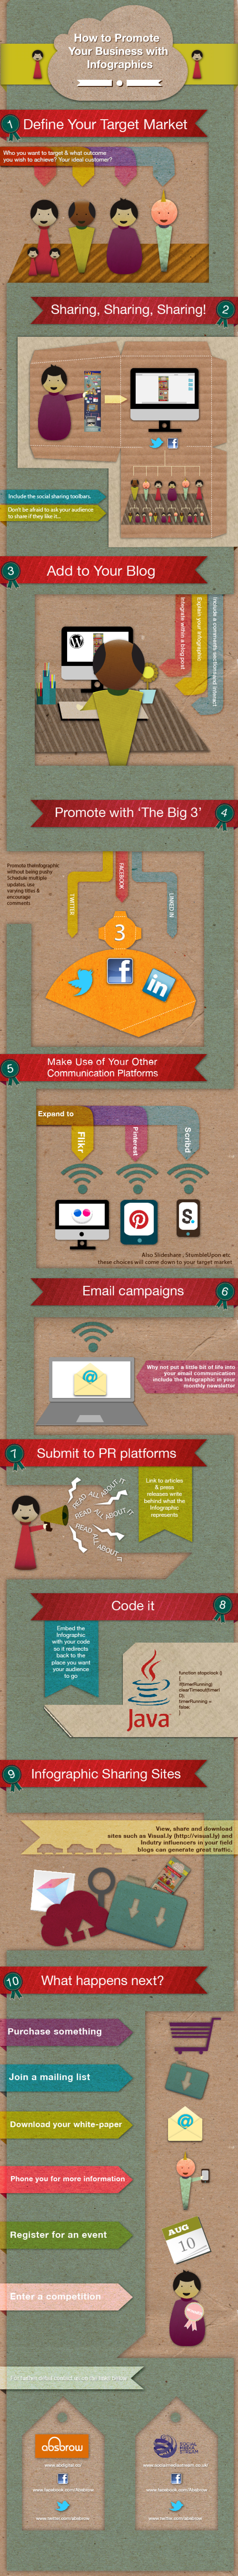 How To Promote Your Business With Infographics Infographic